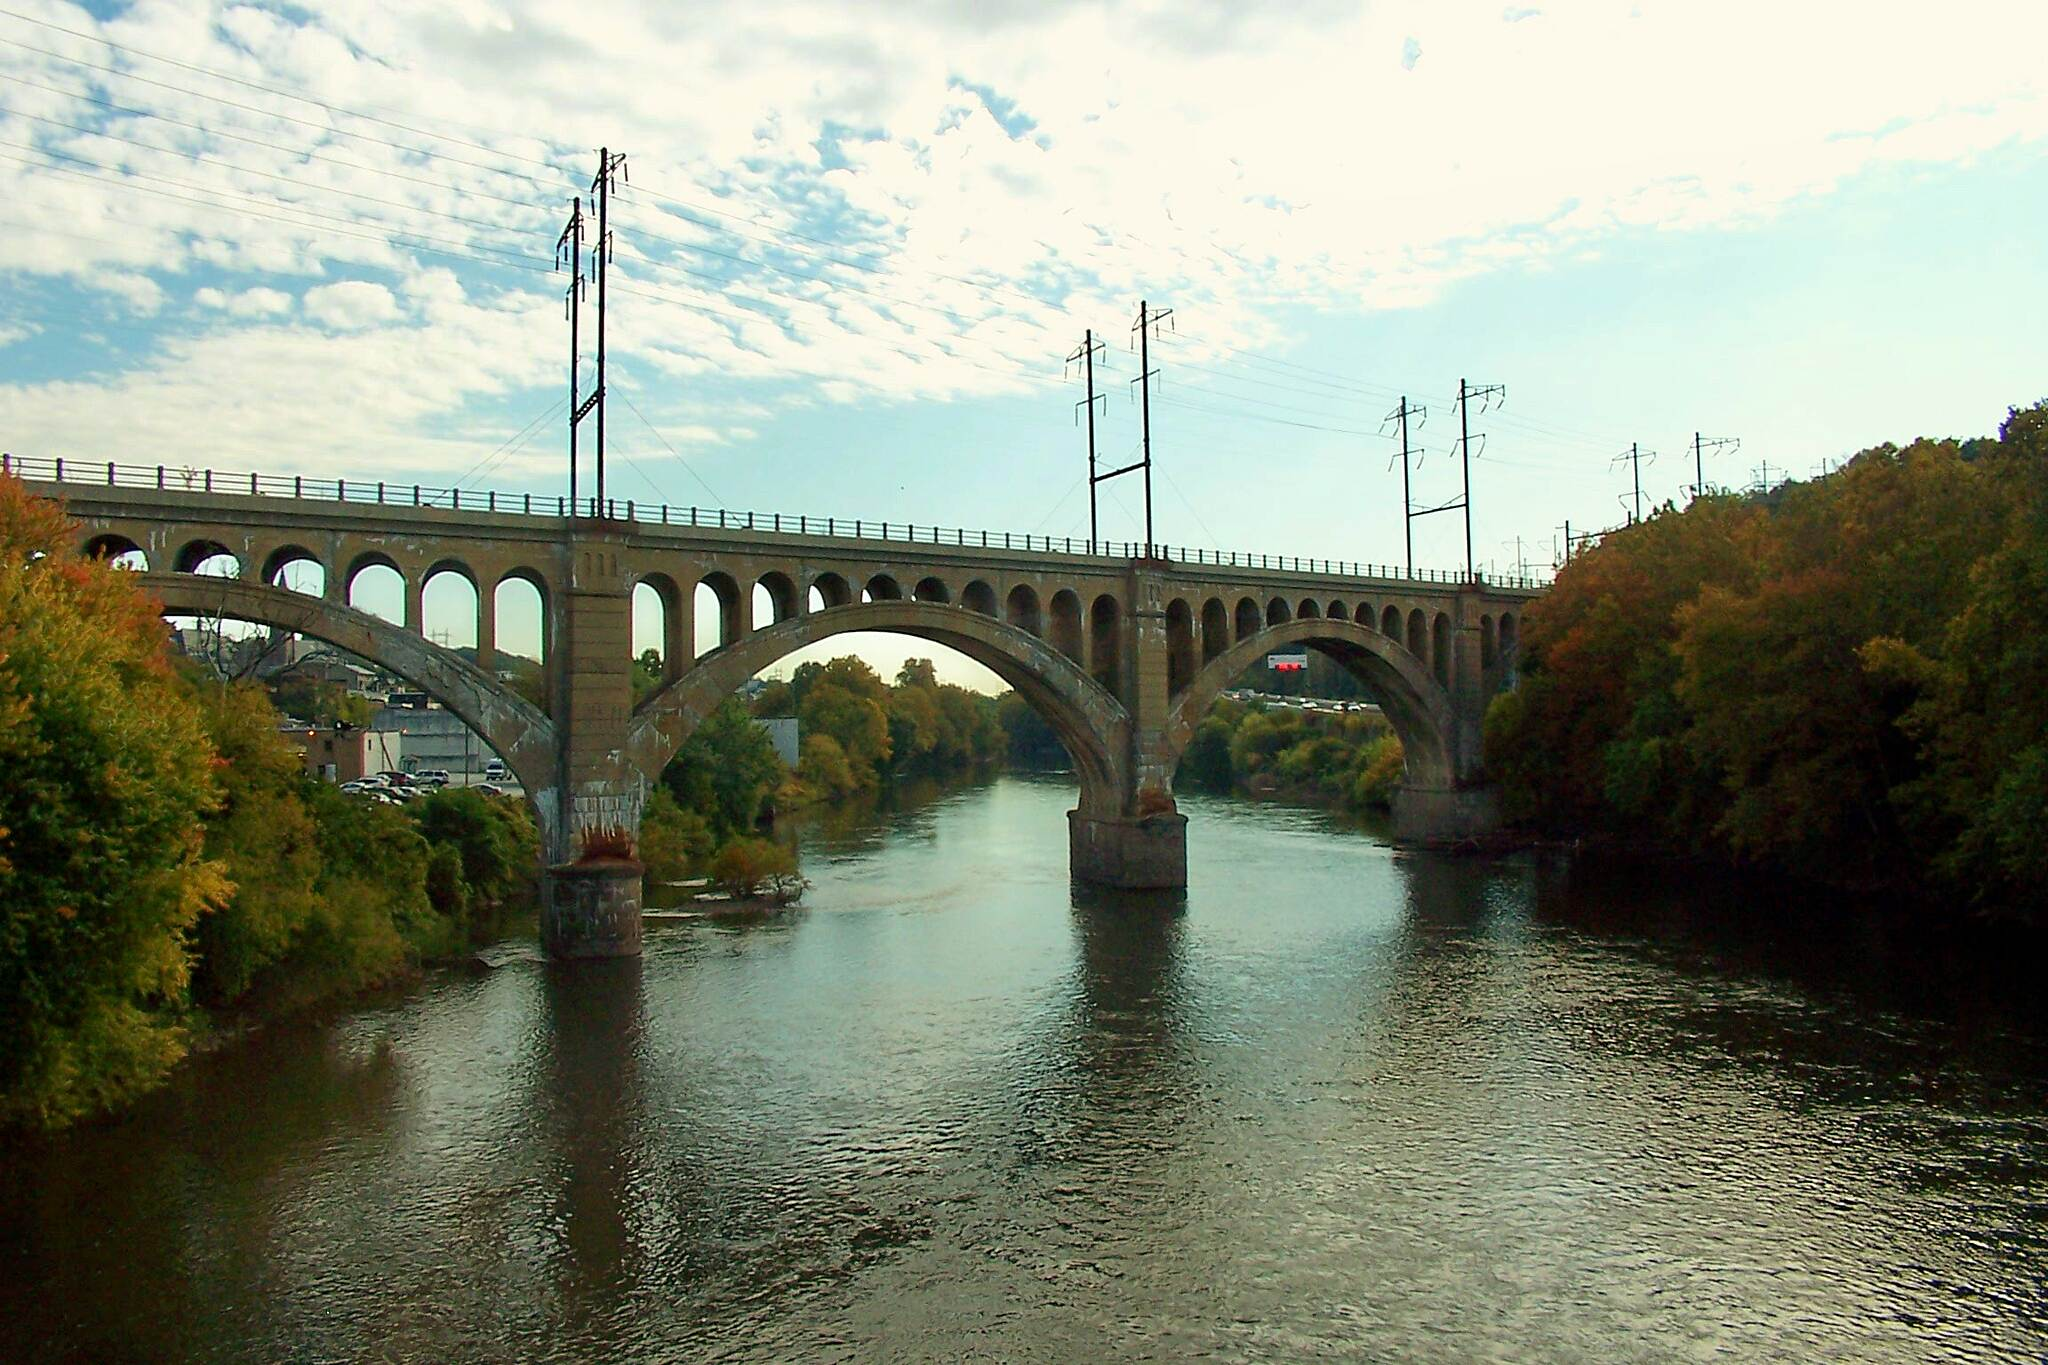 Manayunk Bridge Trail Pennsylvania Railroad Bridge  The bridge was built in 1918. This frontal view really showcases the whole bridge. Thanks to all the people who work to restore this monumental architectural beauty. This trail is a must.